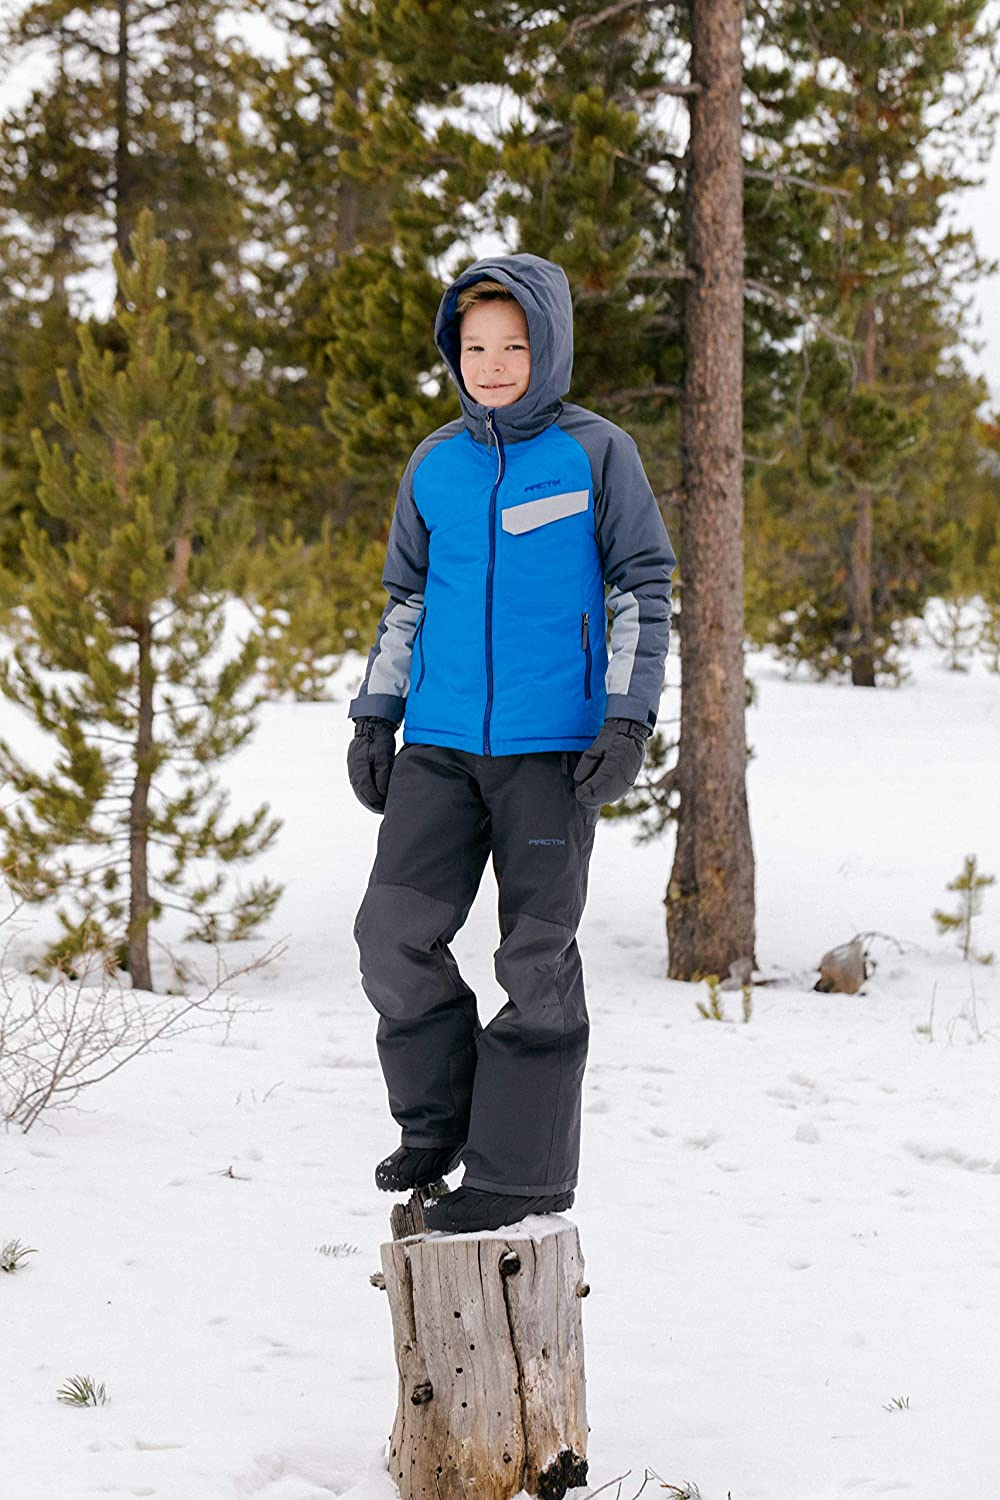 X-Large Charcoal Arctix Kids Snow Pants with Reinforced Knees and Seat